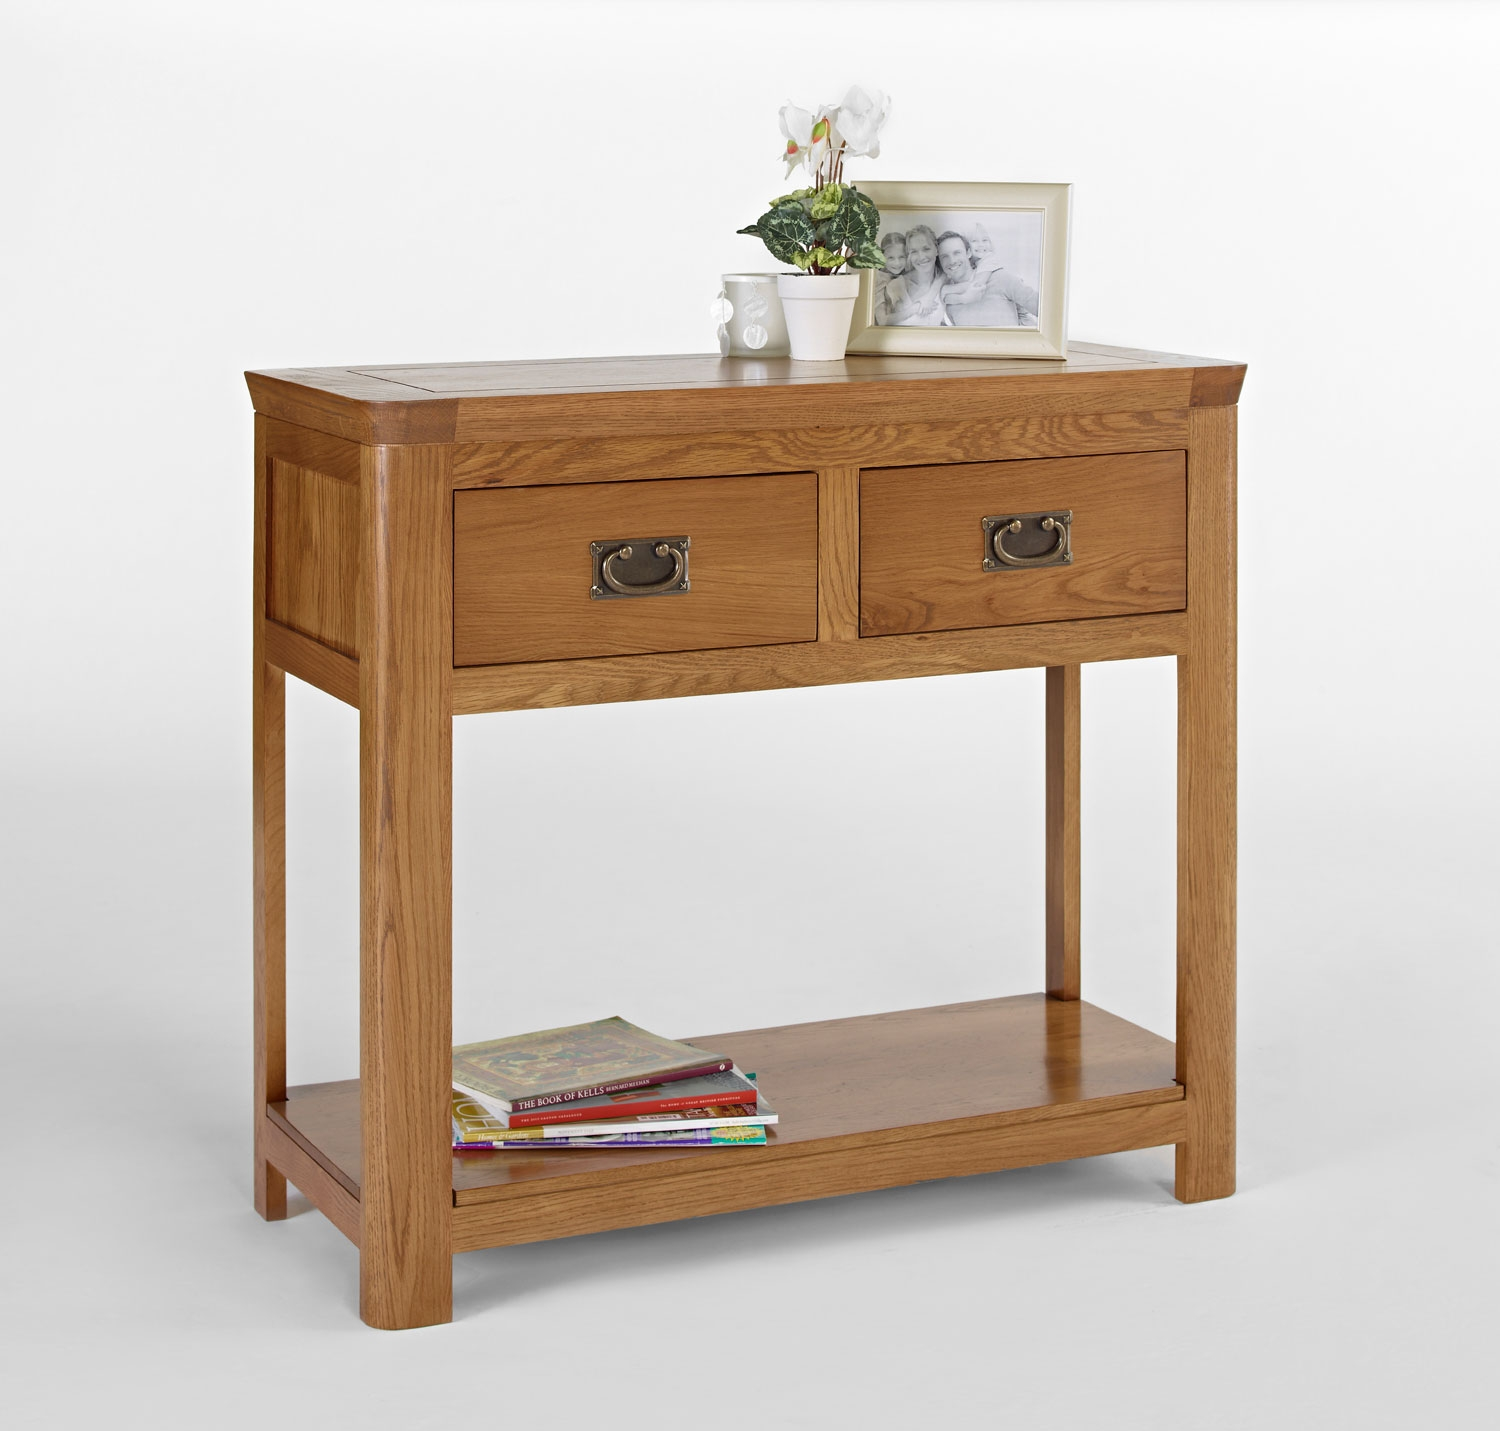 Living room furniture cw furniture knightsbridge oak console table geotapseo Images